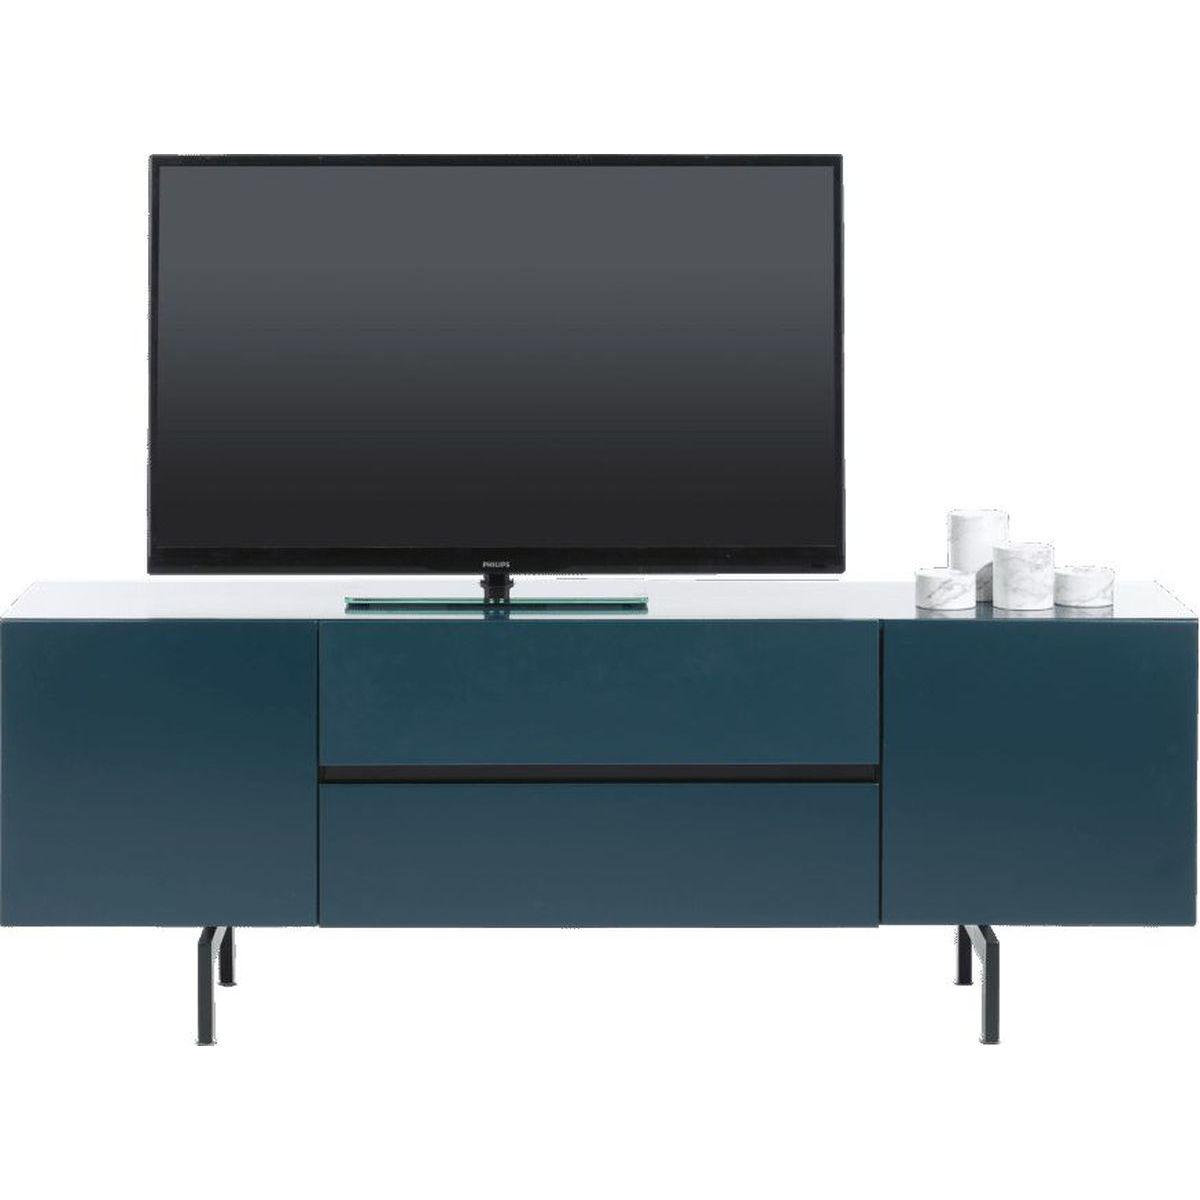 Meuble TV LURANO Xooon 175cm petrol